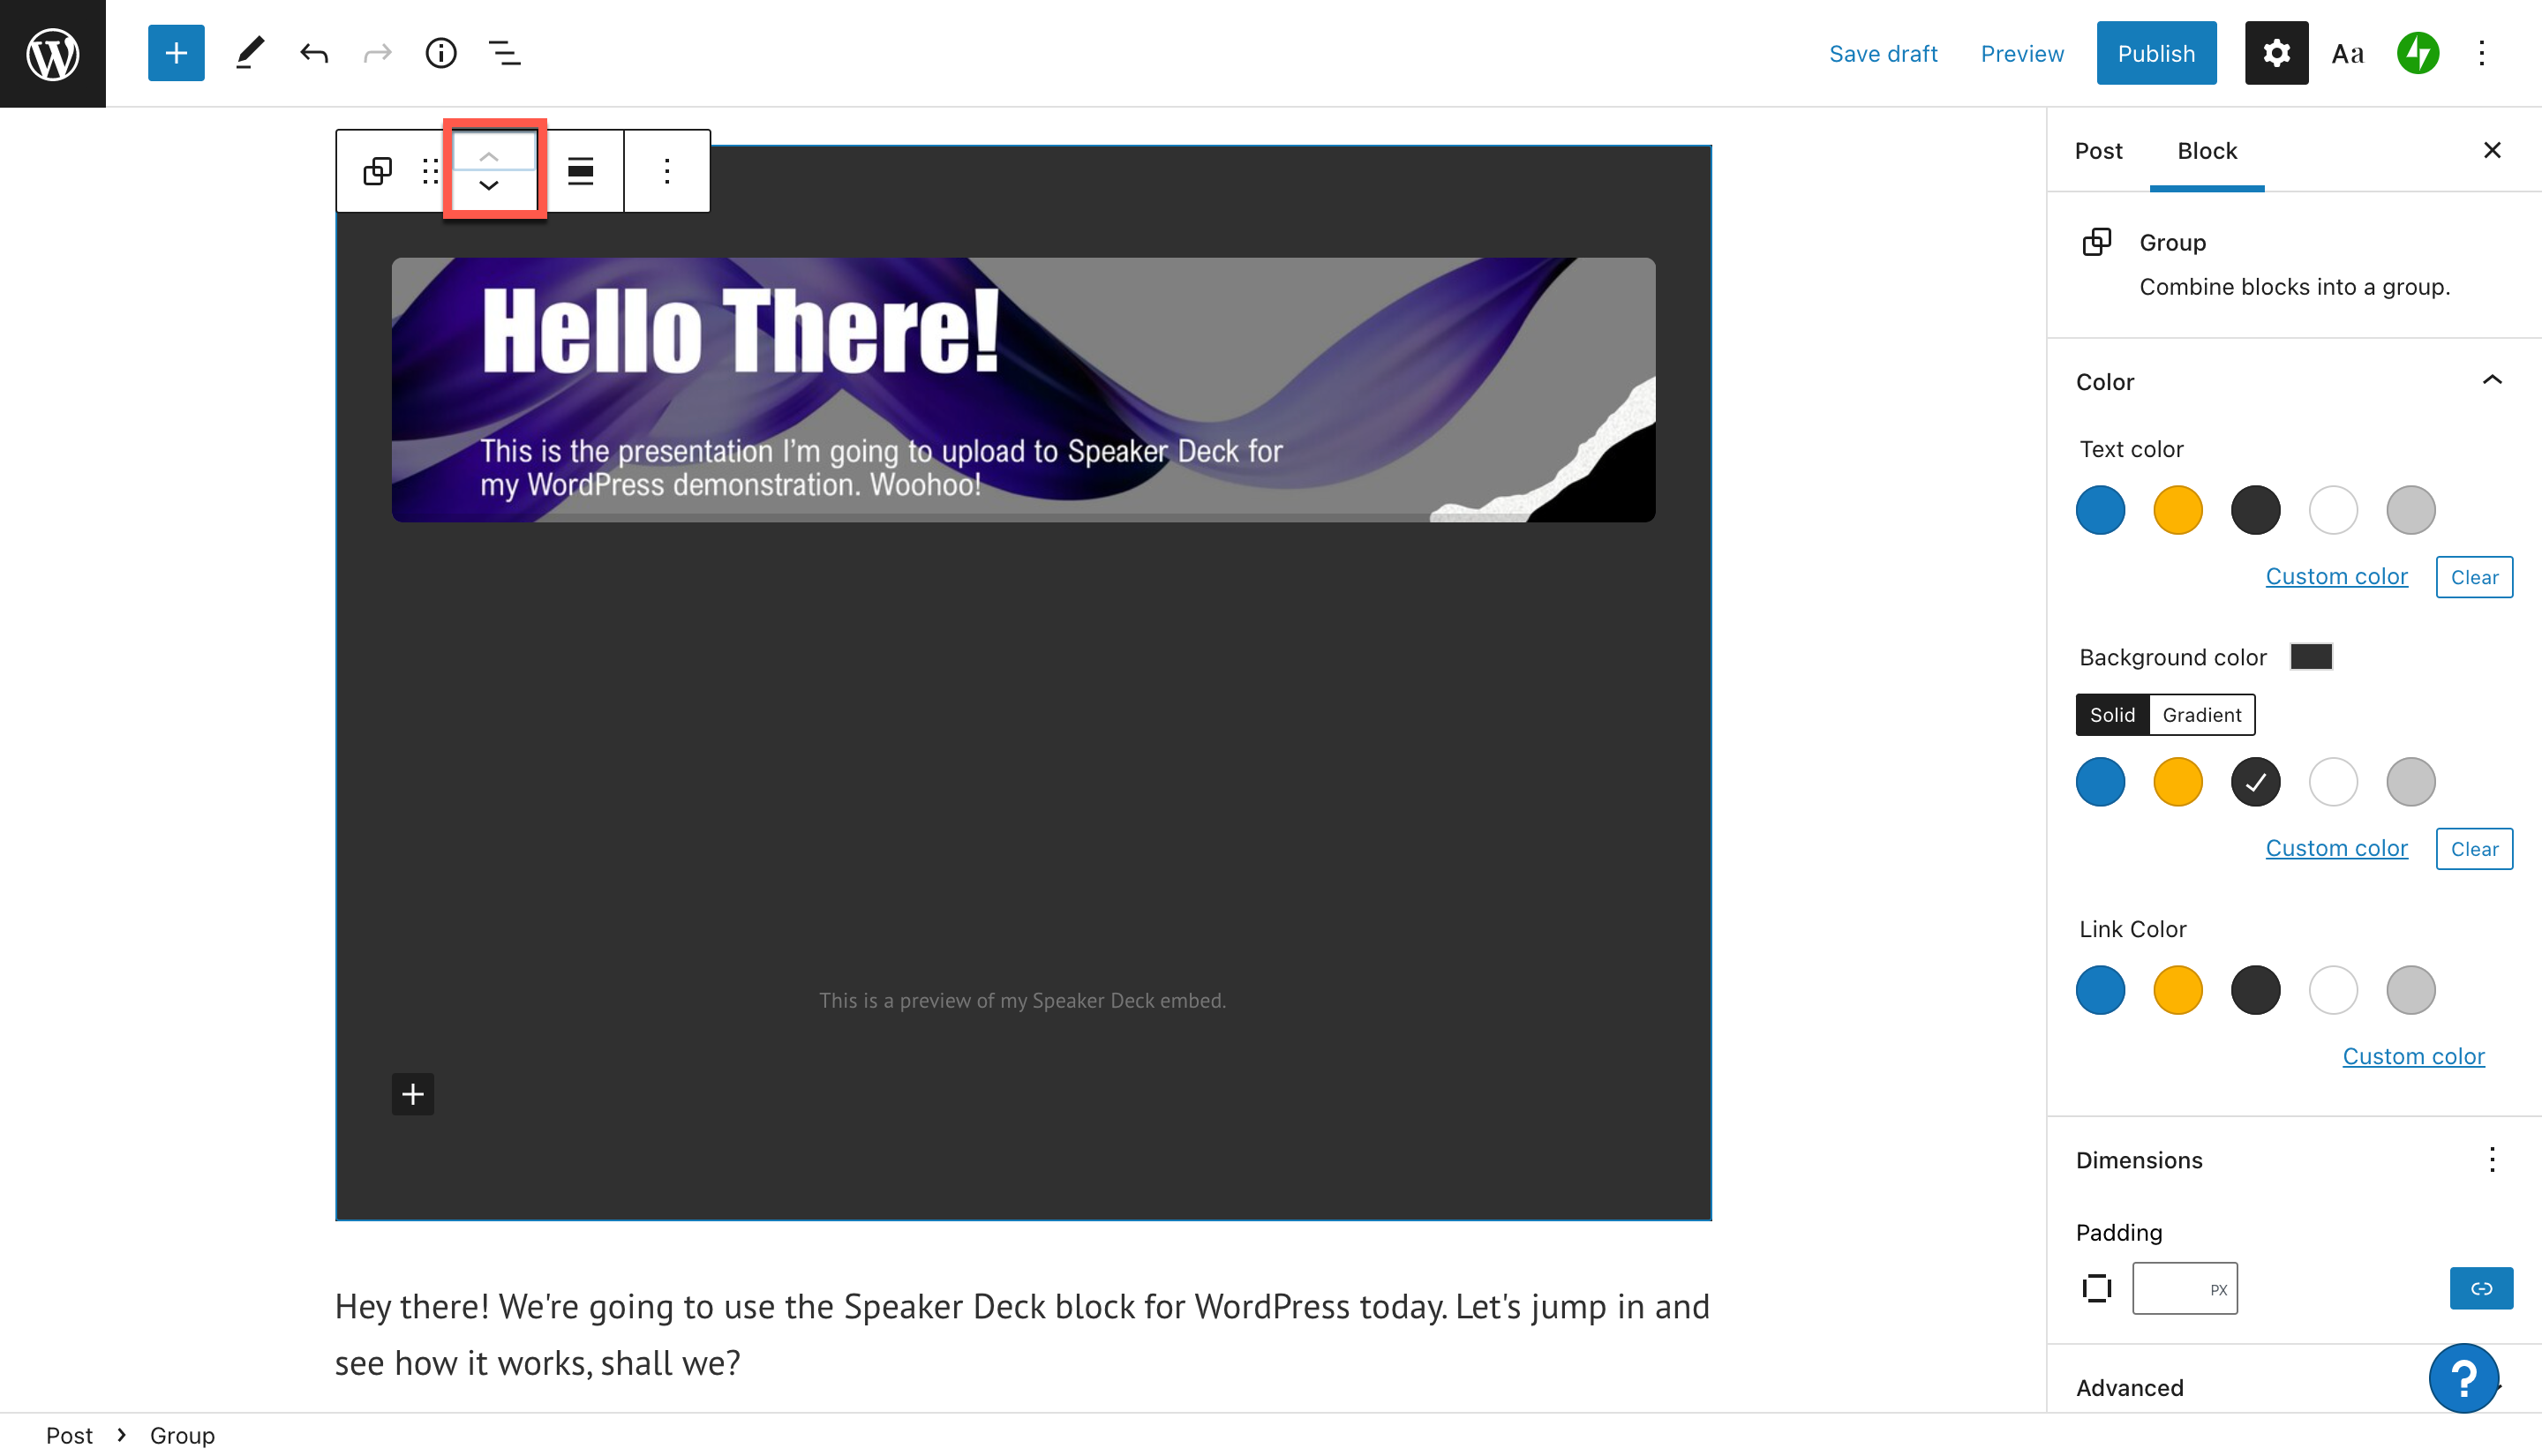 how-to-use-the-wordpress-speaker-deck-embed-block-14 如何使用 WordPress Speaker Deck 嵌入块